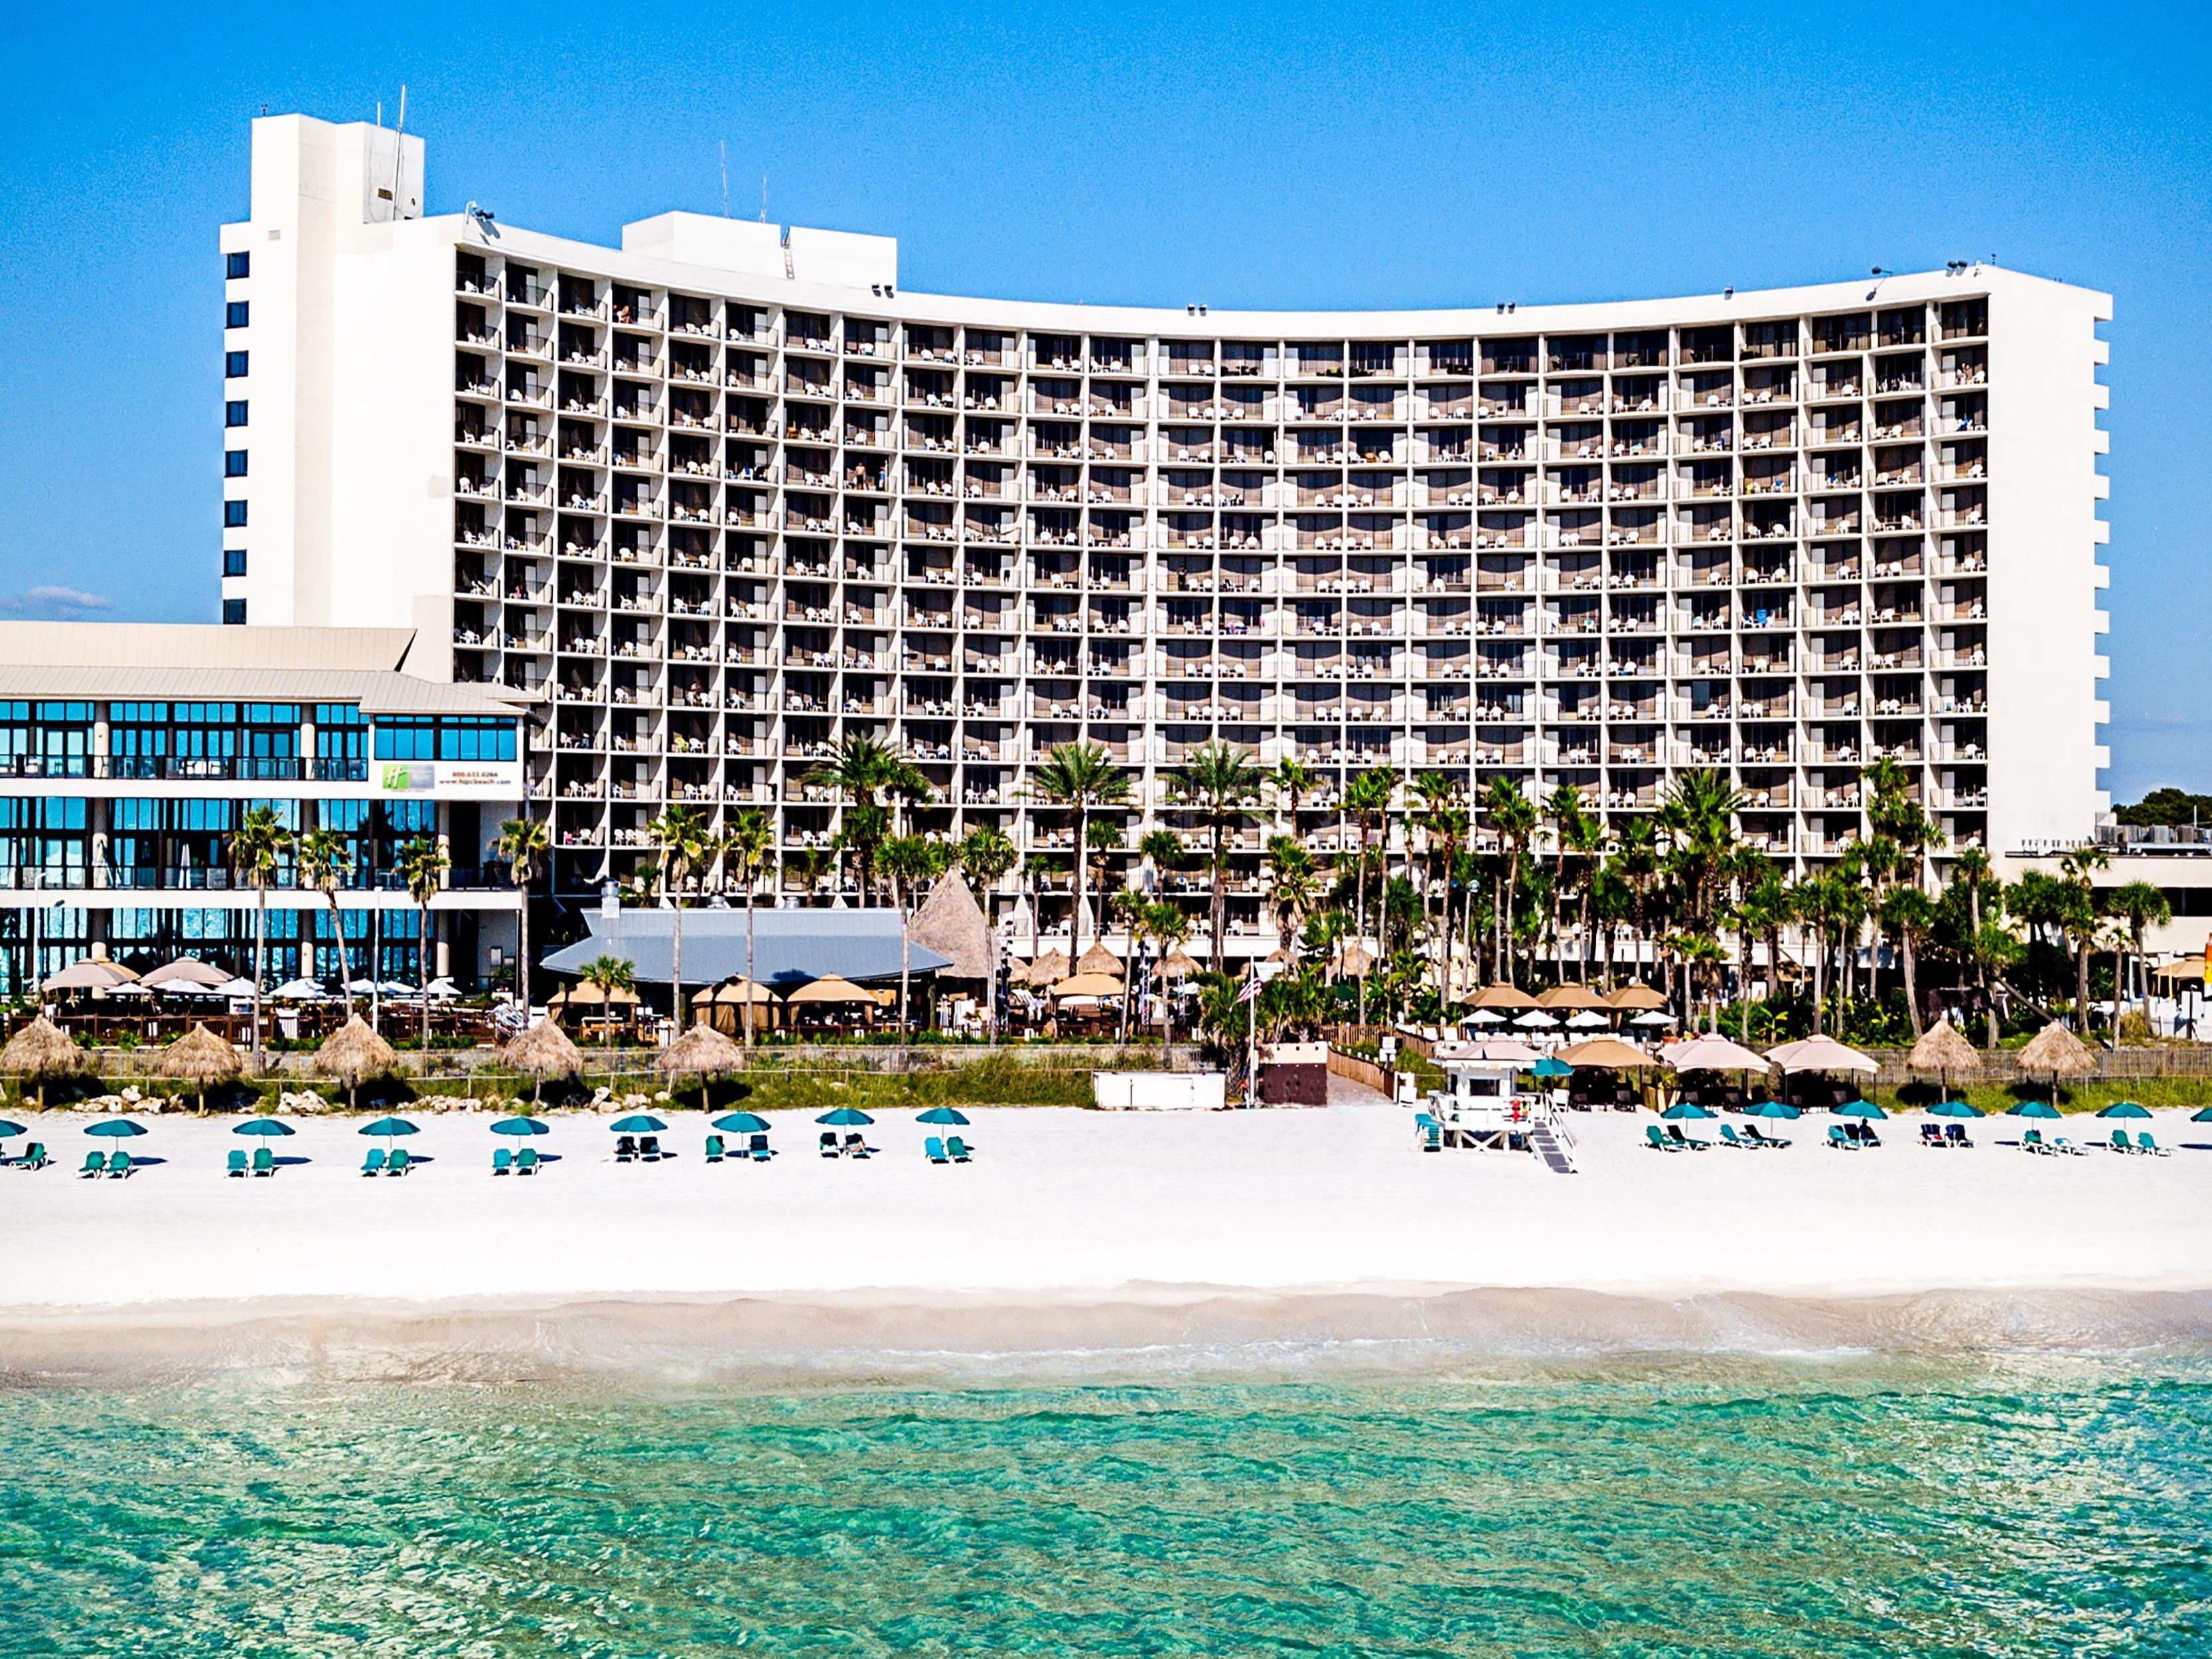 REGISTER TO QUALIFY TO WIN A BEACH TRIP GETAWAY!